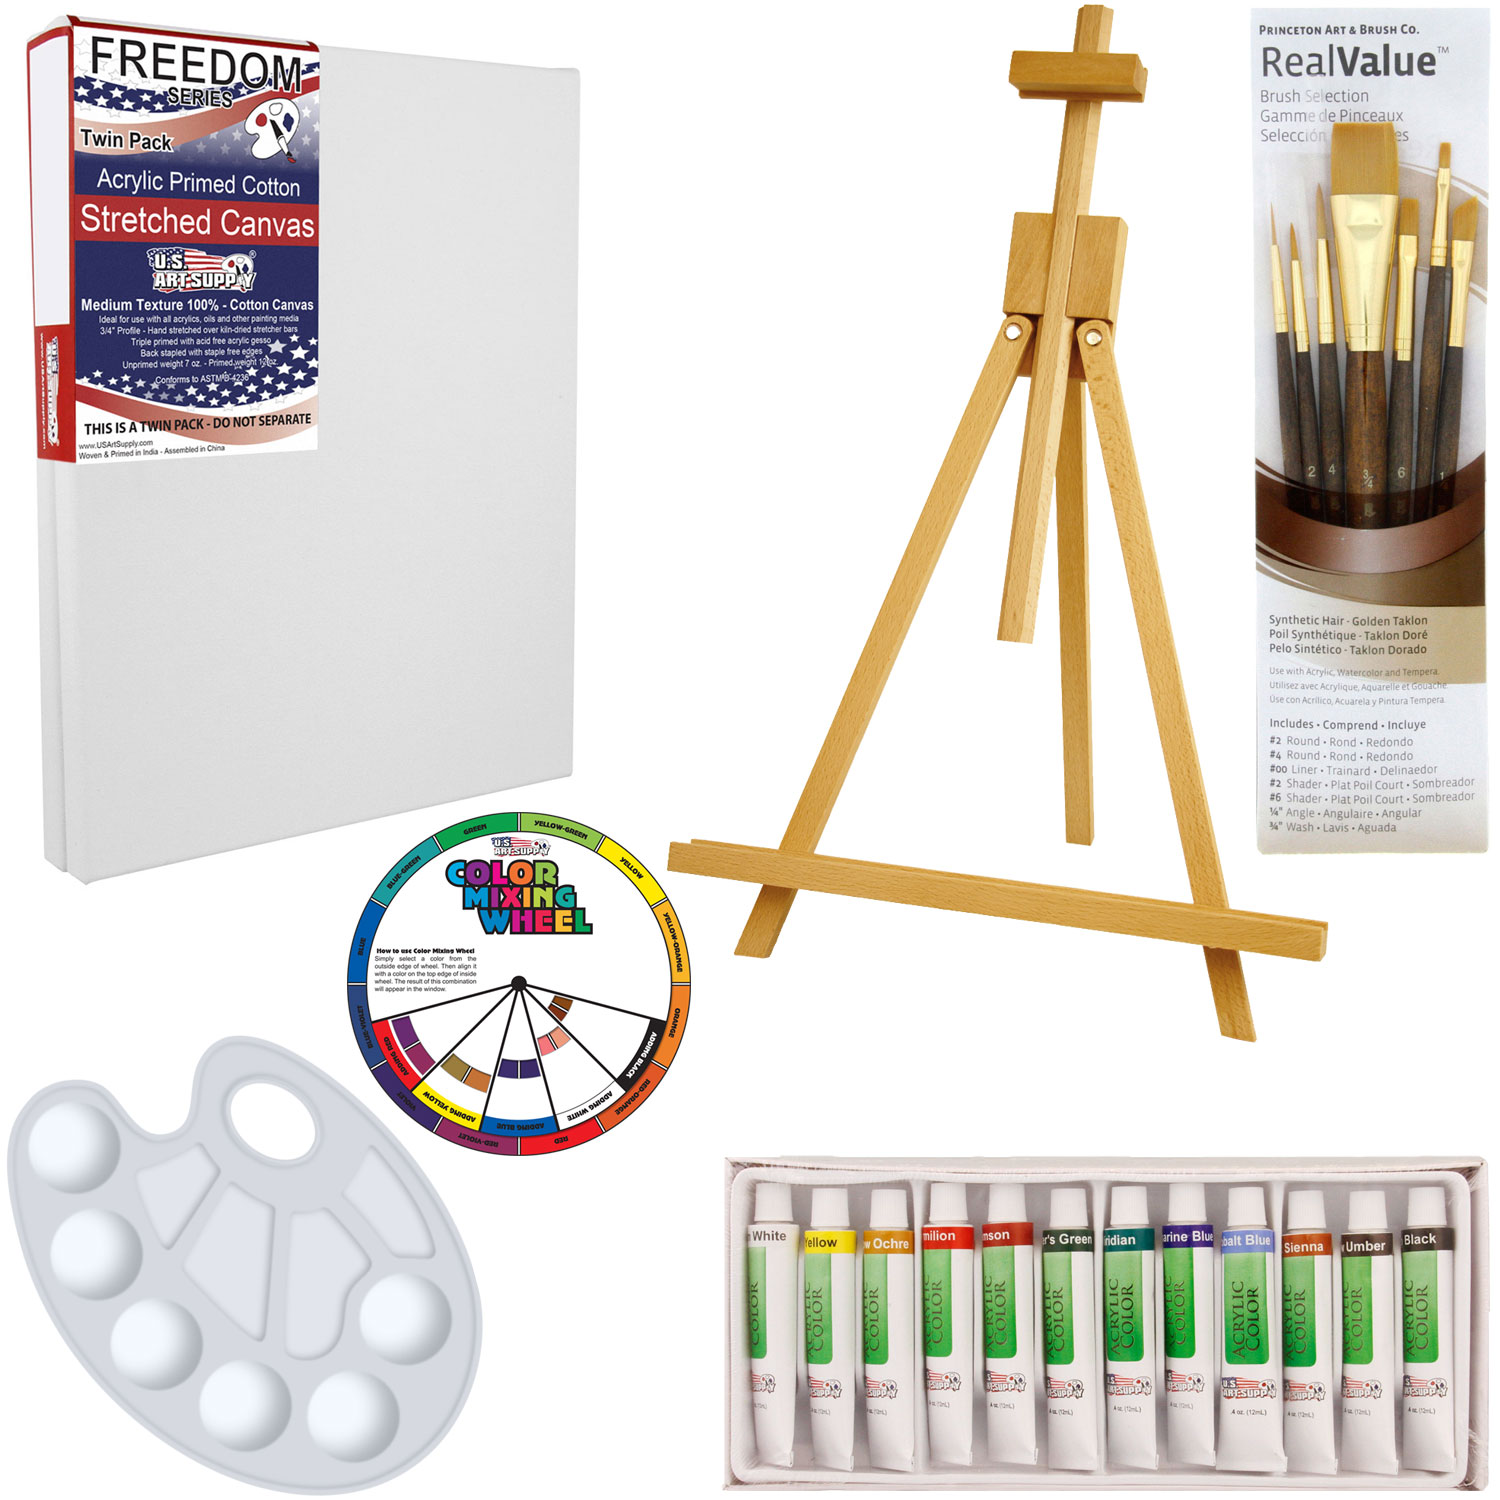 Us art supply 21 piece acrylic painting set with table for Acrylic mural paint supplies